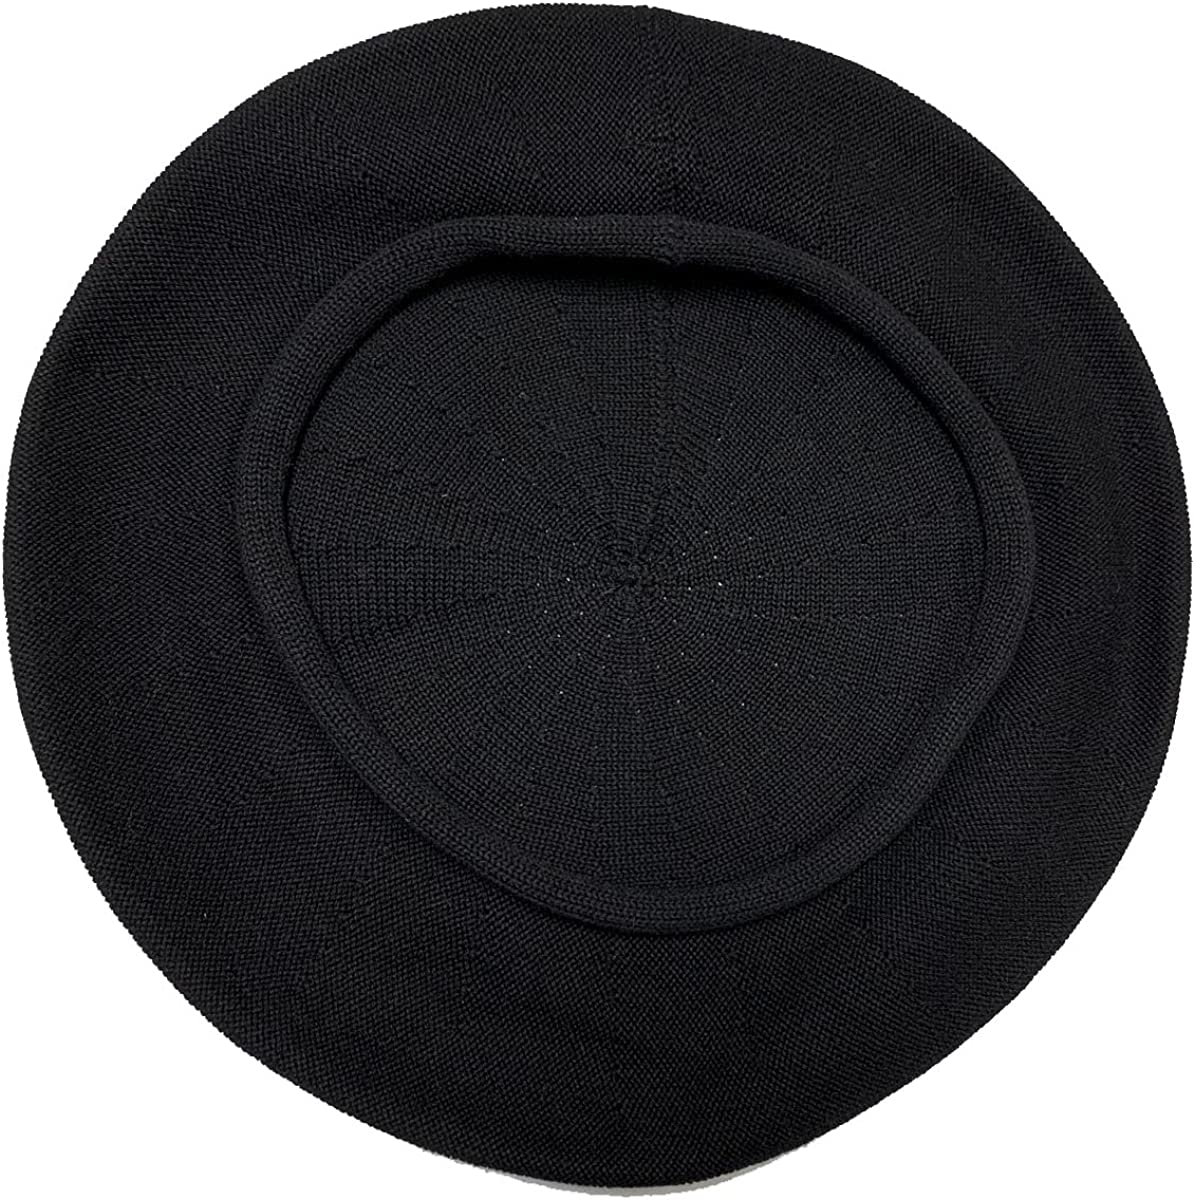 Parkhurst of Canada 10-1/2 Inch Cotton Knit Beret